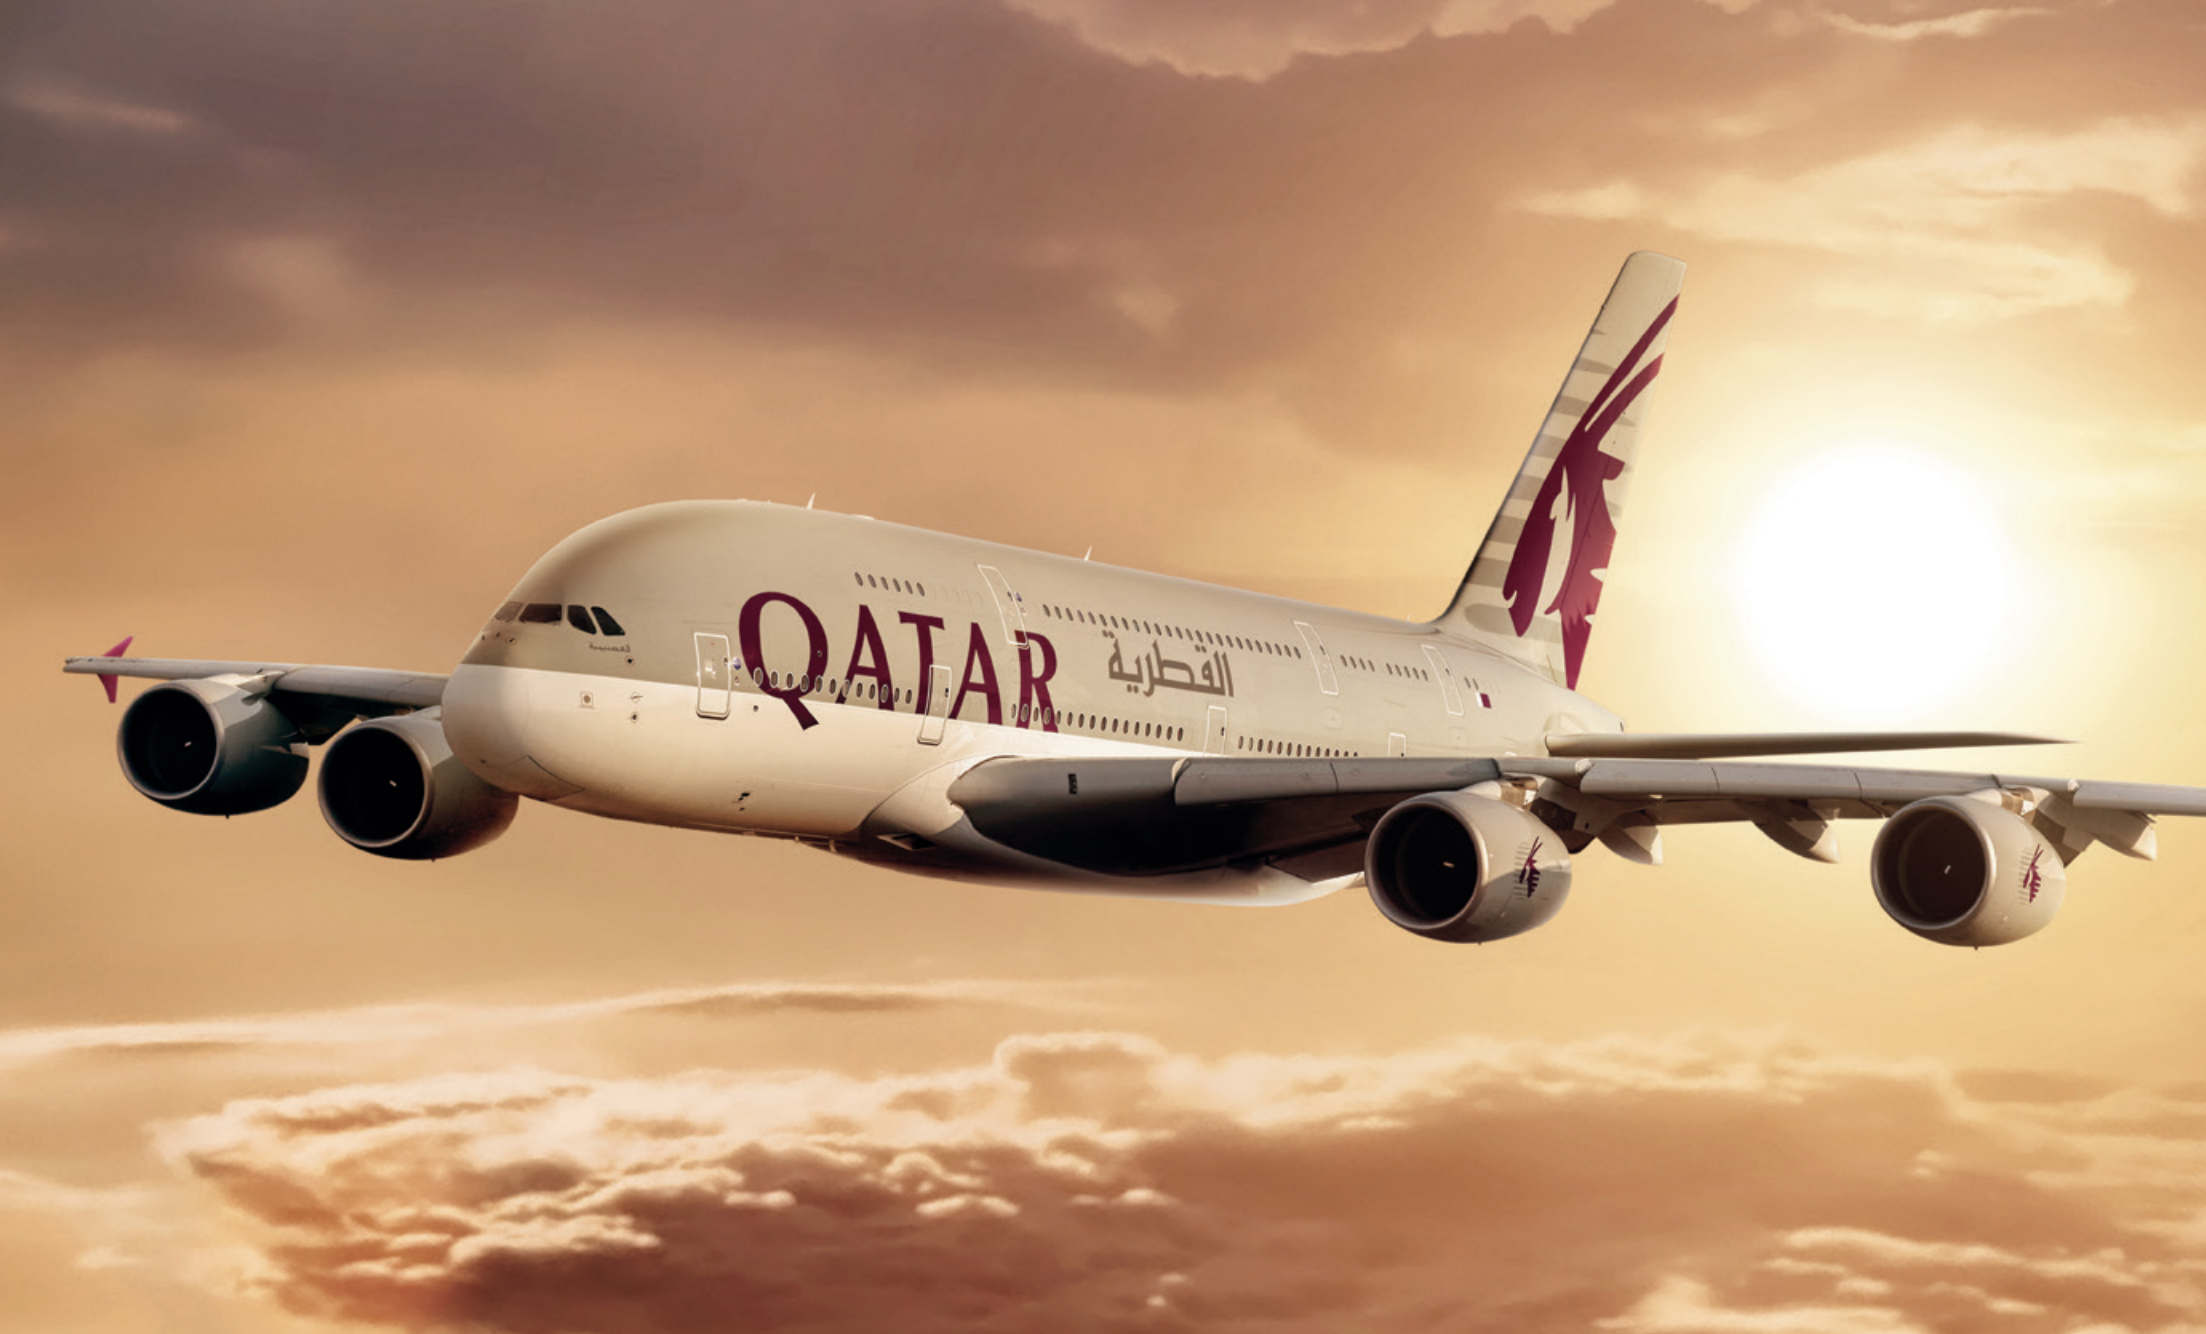 Αποτέλεσμα εικόνας για QATAR AIRWAYS' GLOBAL OPERATIONS RUNNING SMOOTHLY, WITH MAJORITY OF FLIGHTS OPERATING AS SCHEDULED